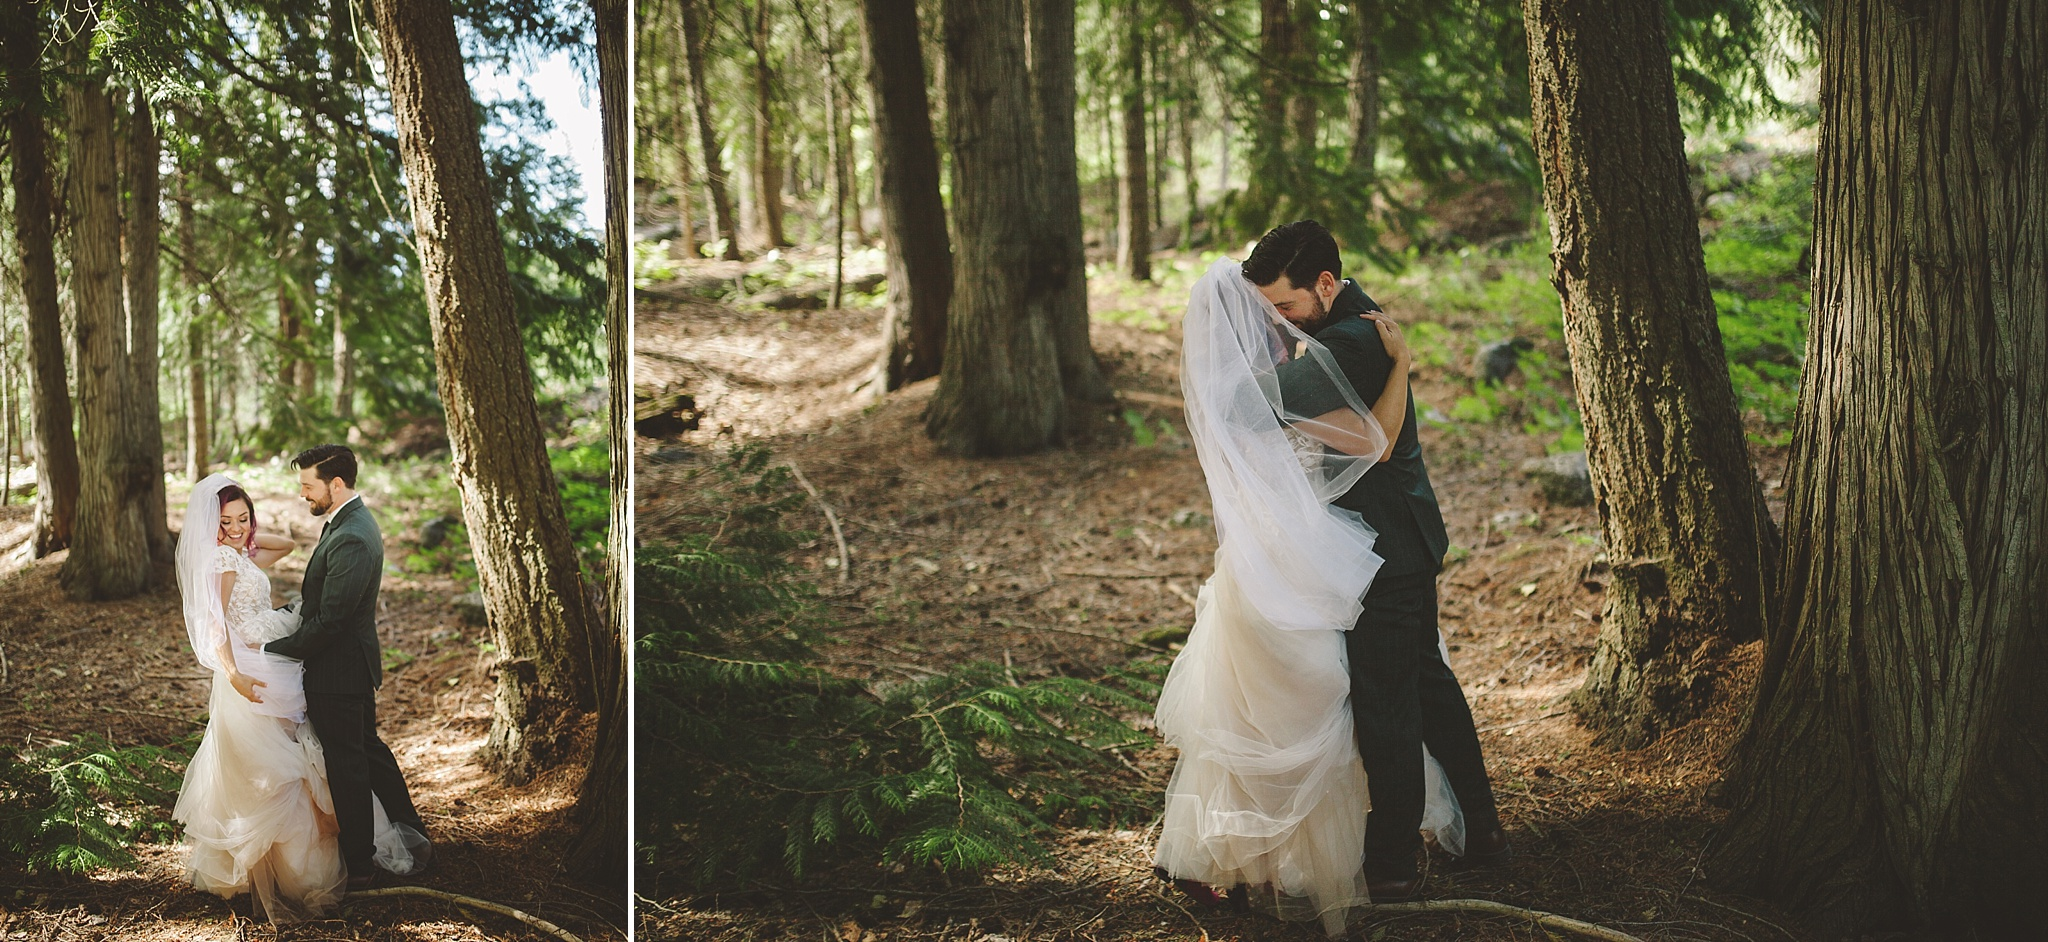 wedding in the woods of washington